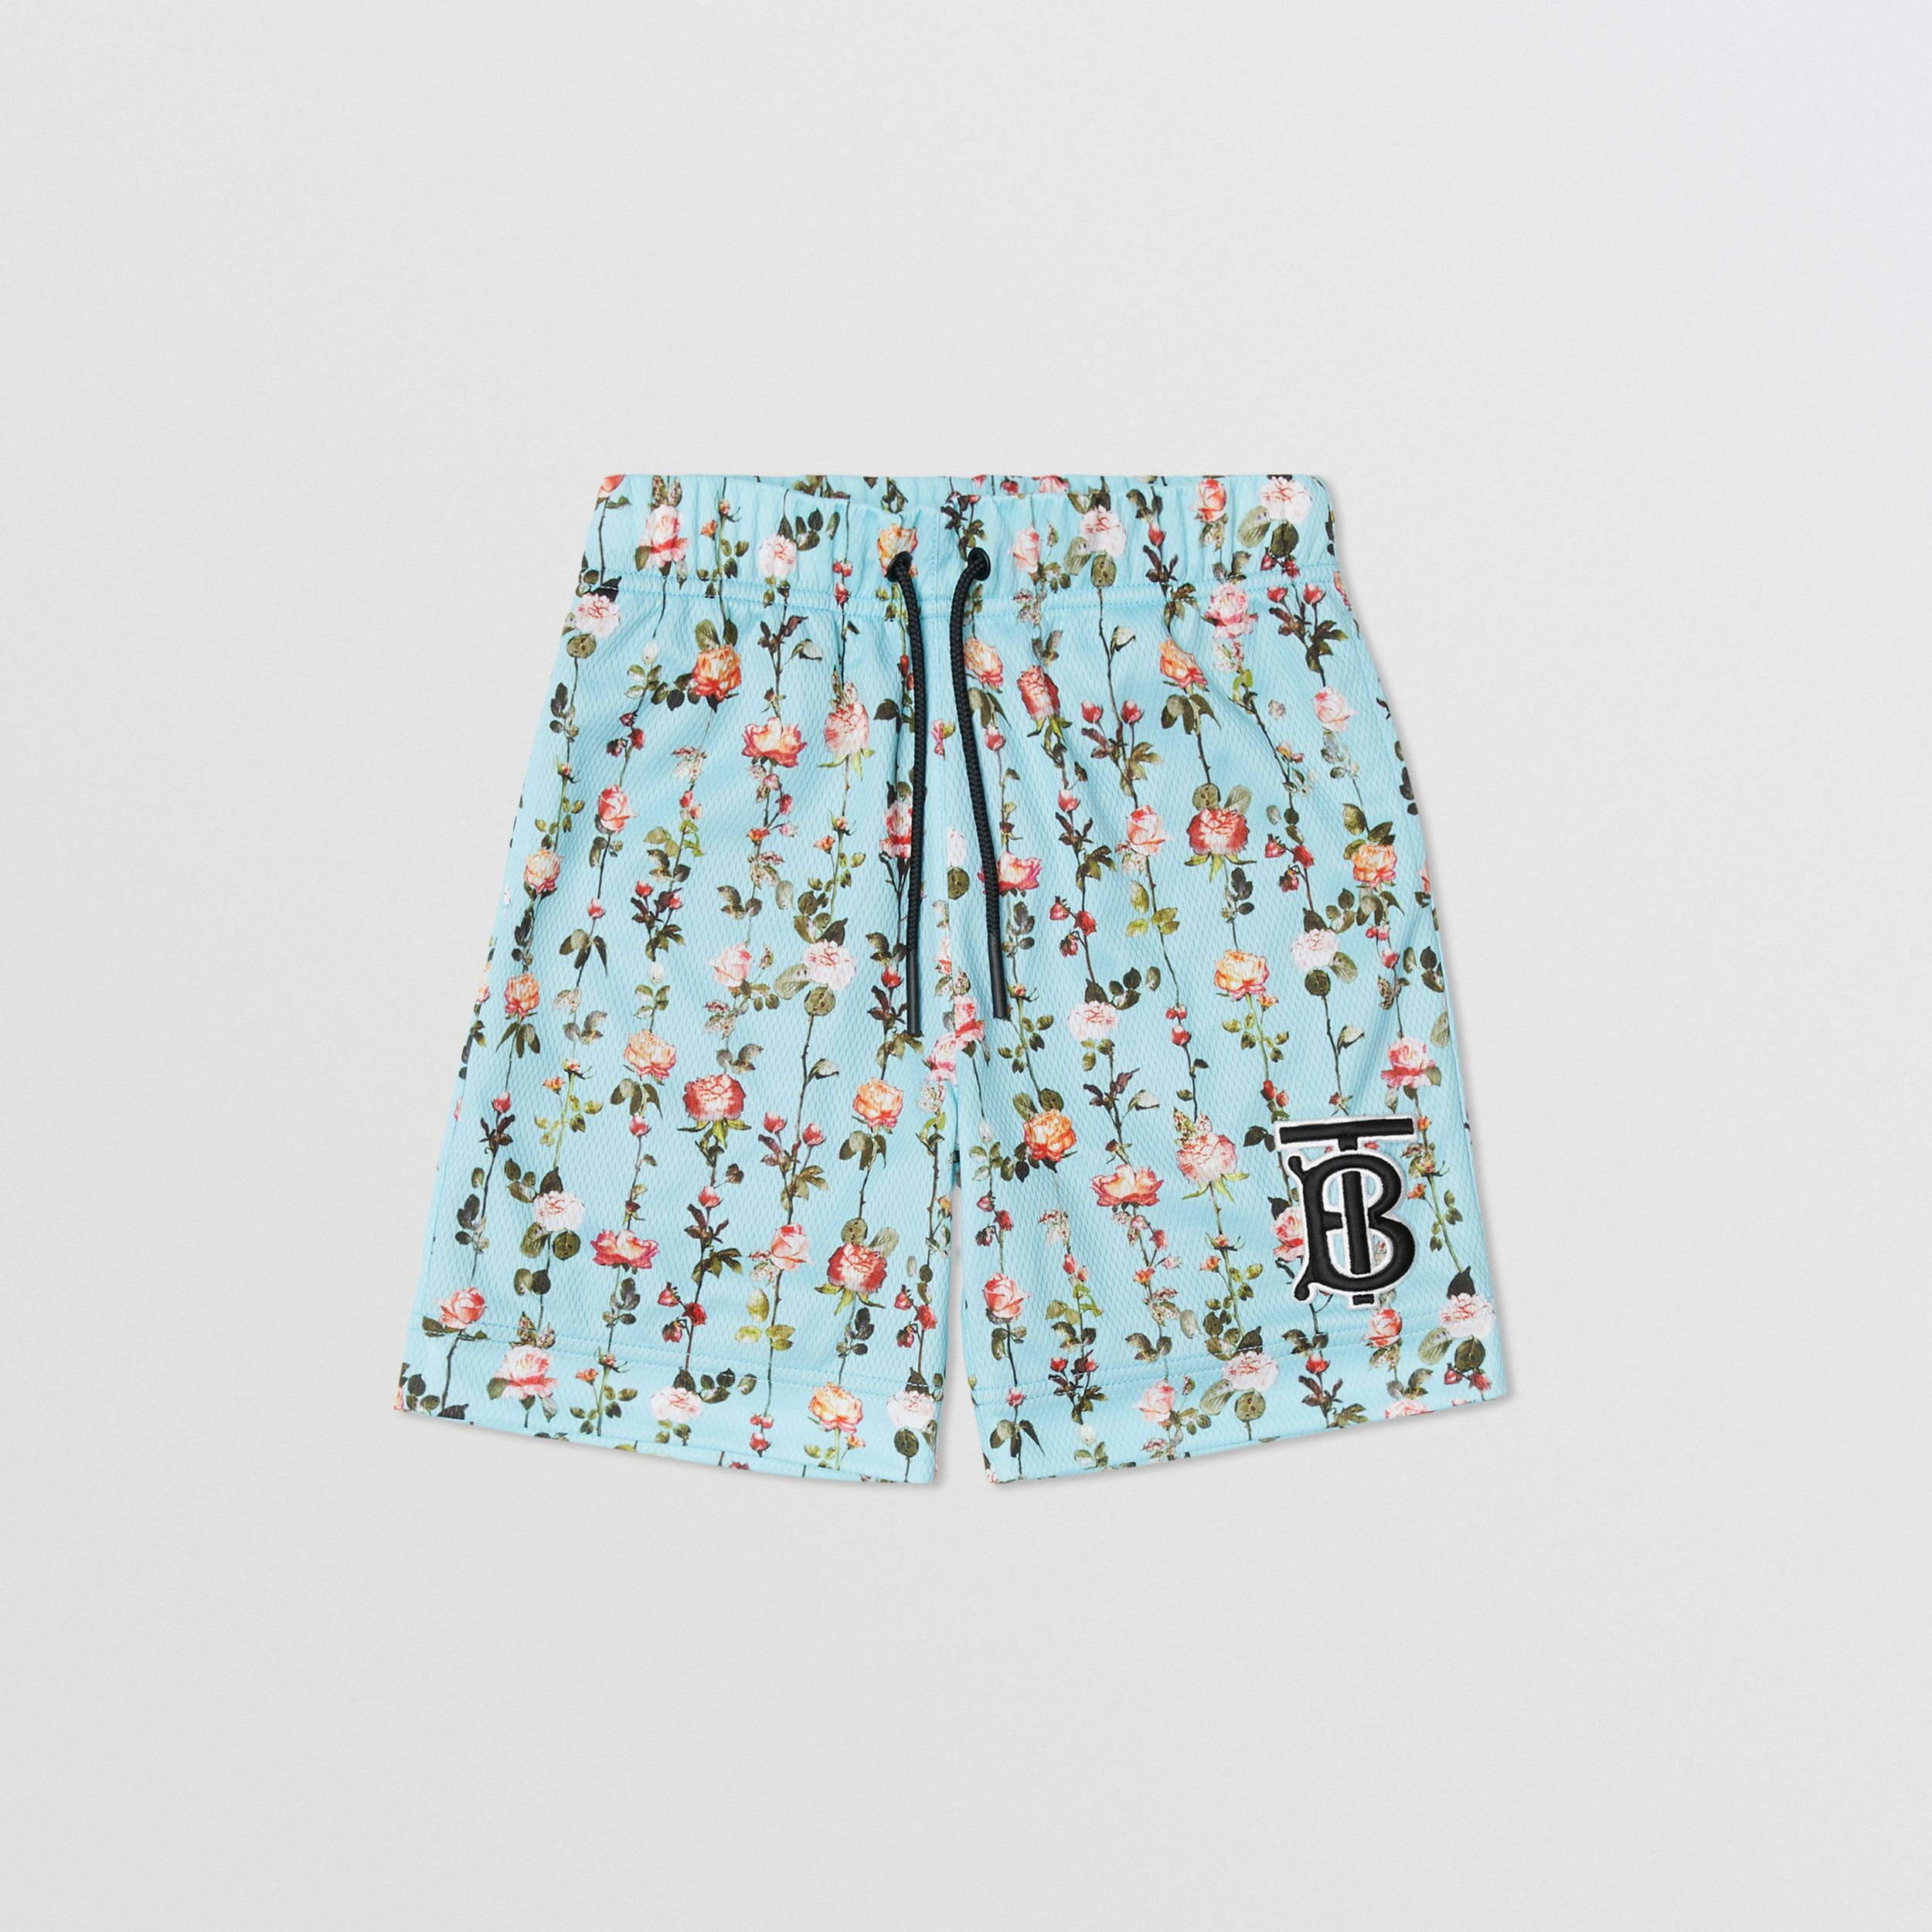 Monogram Motif Rose Print Jersey Mesh Shorts in Blue Topaz | Burberry - 1